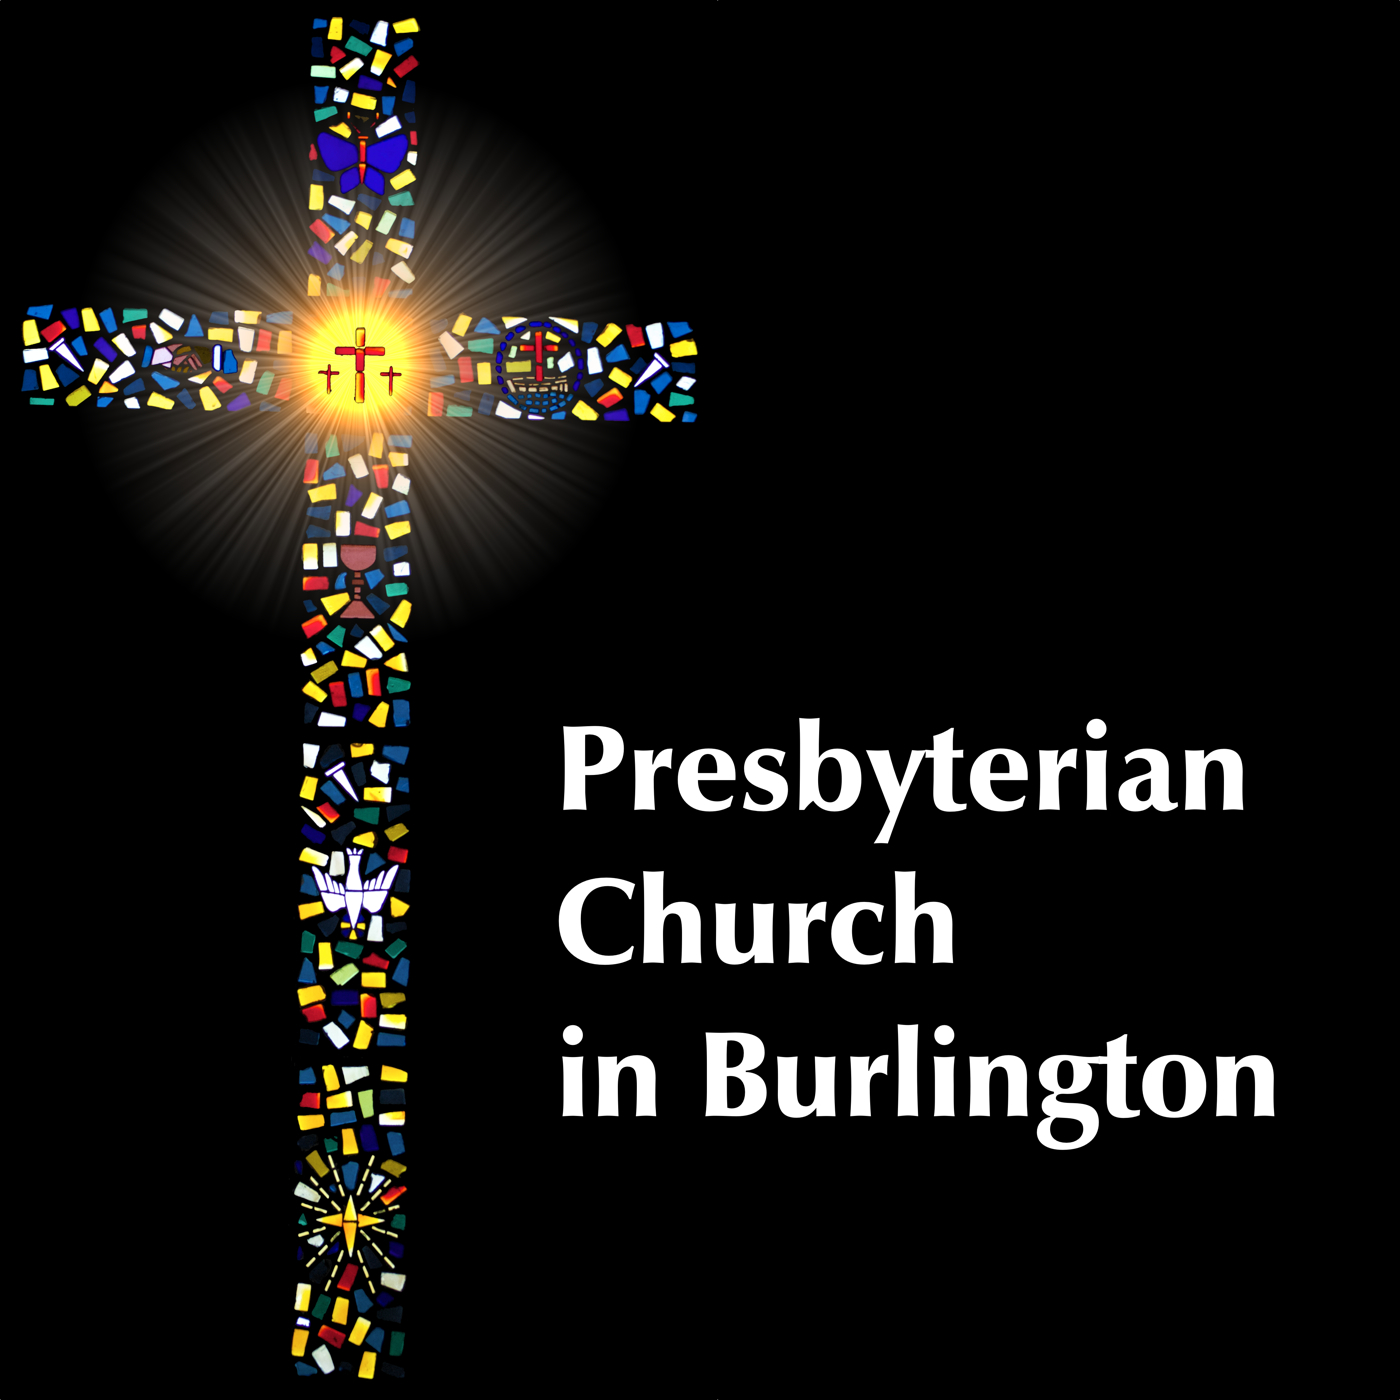 Burlington Presbyterian Church